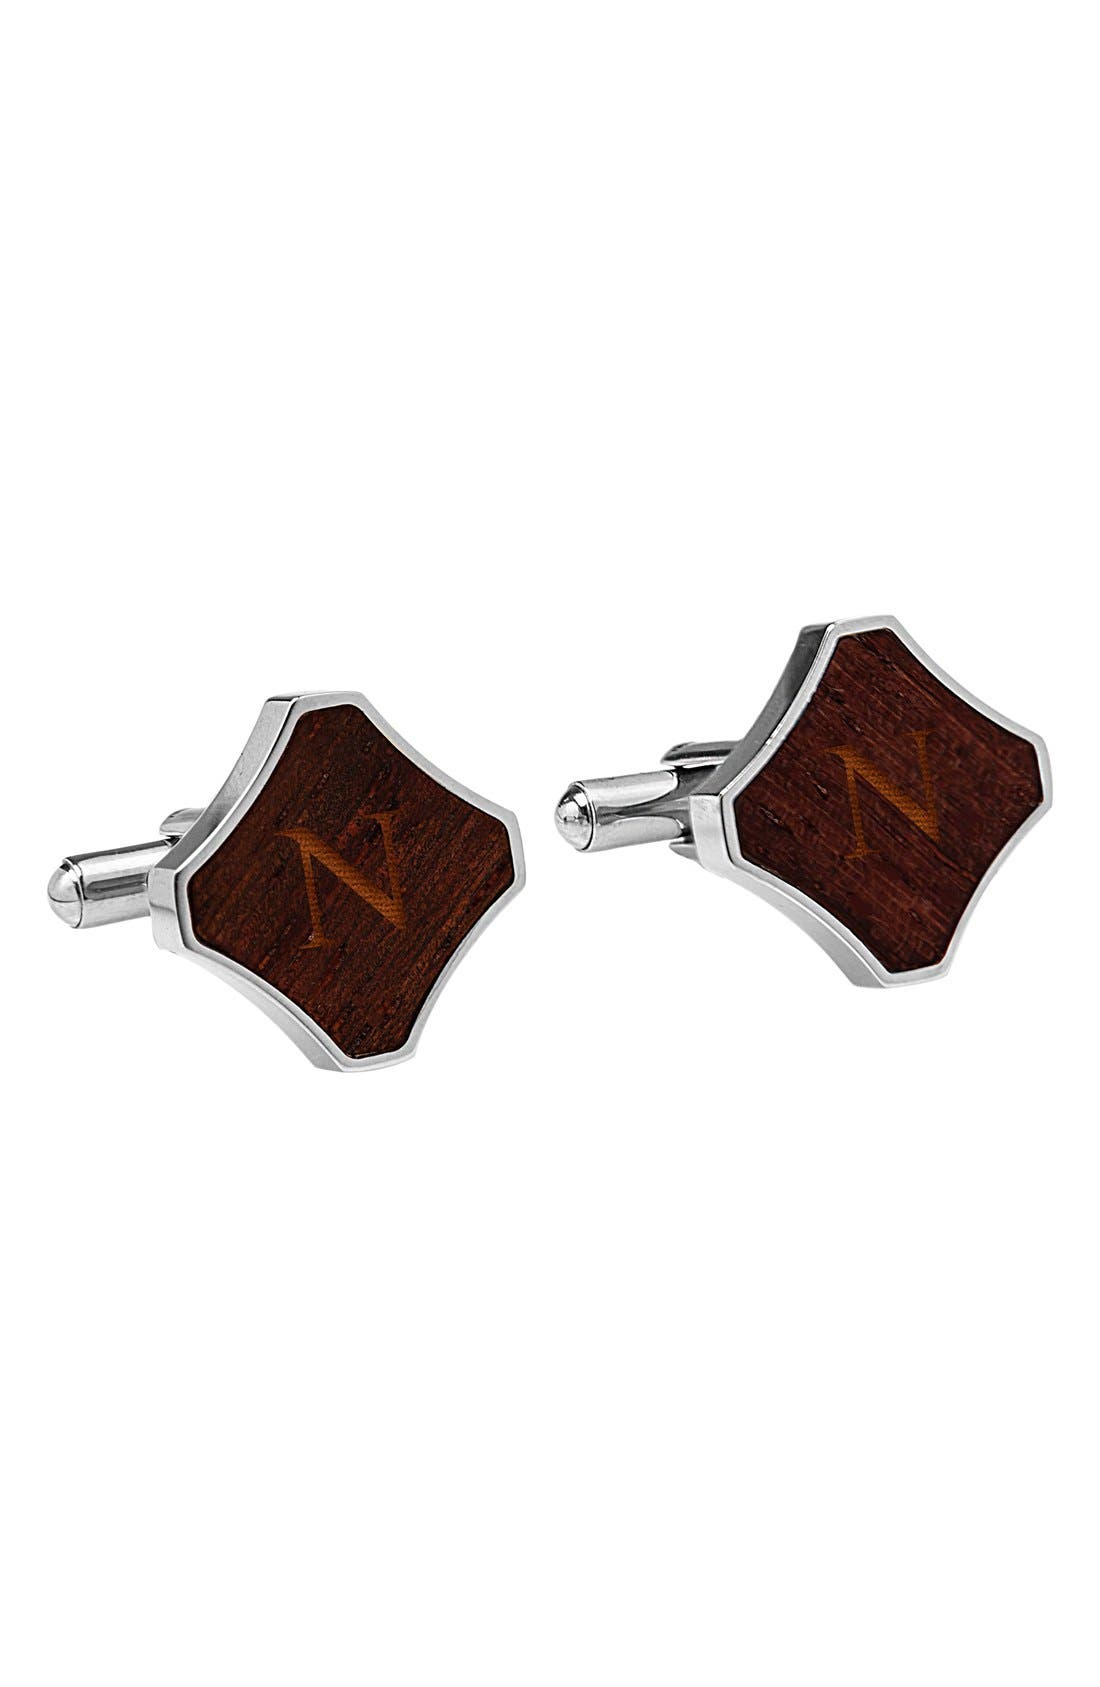 CATHYS CONCEPTS Monogram Cuff Links